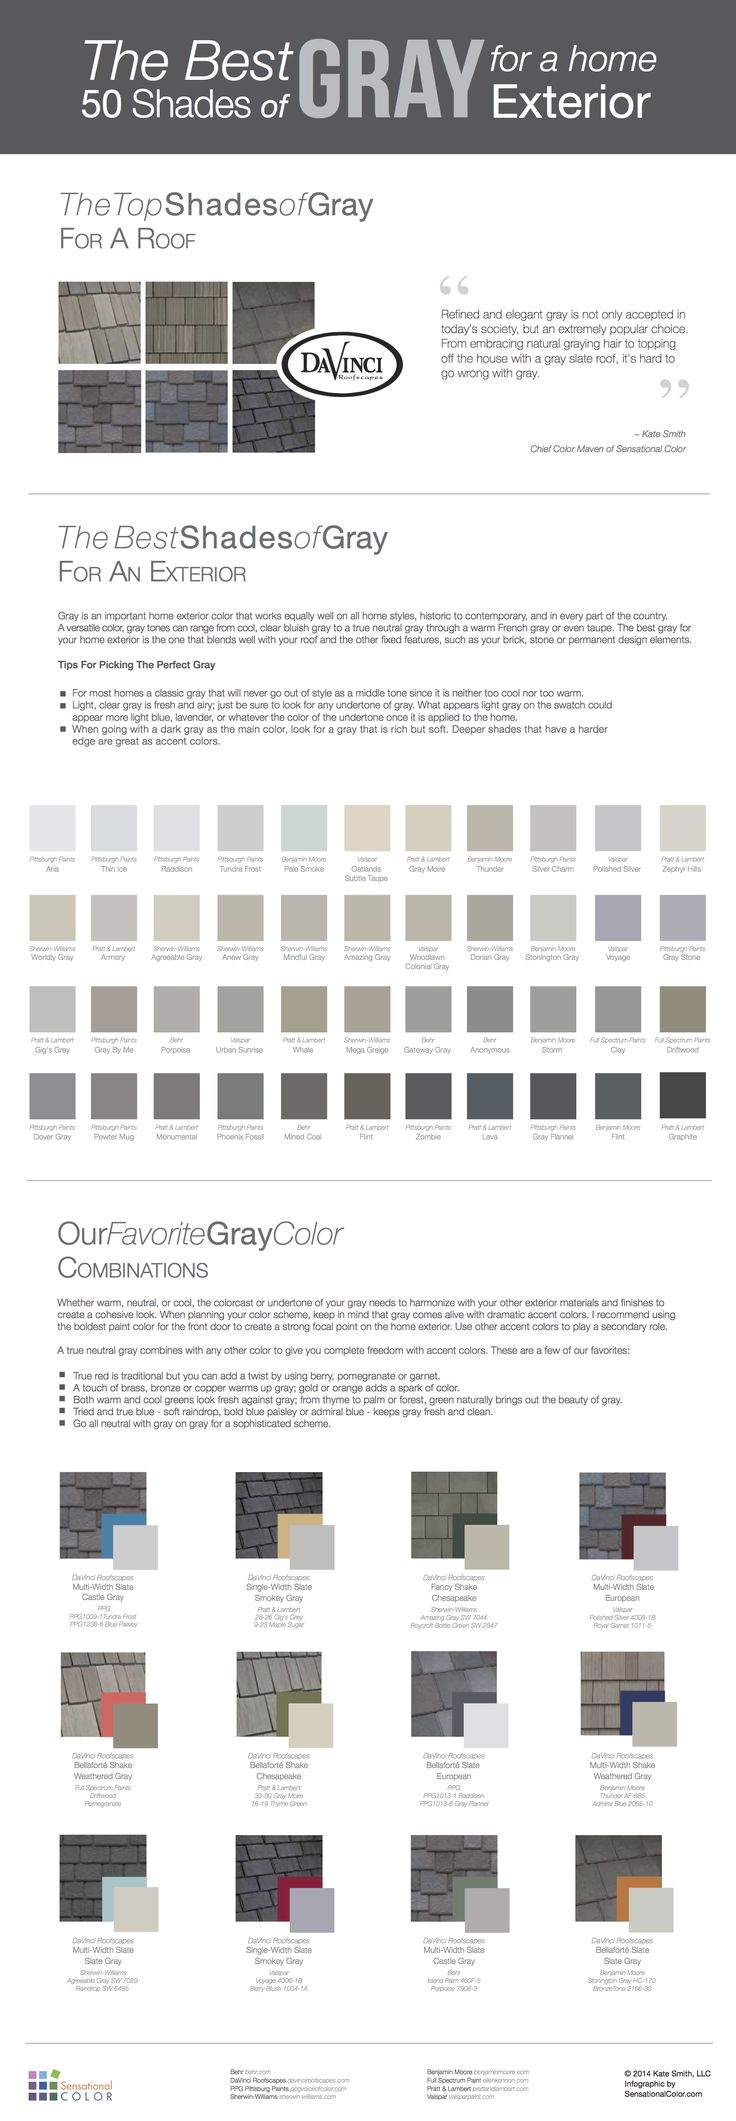 Best 50 Shades Of Gray For A Home Exterior Infographic